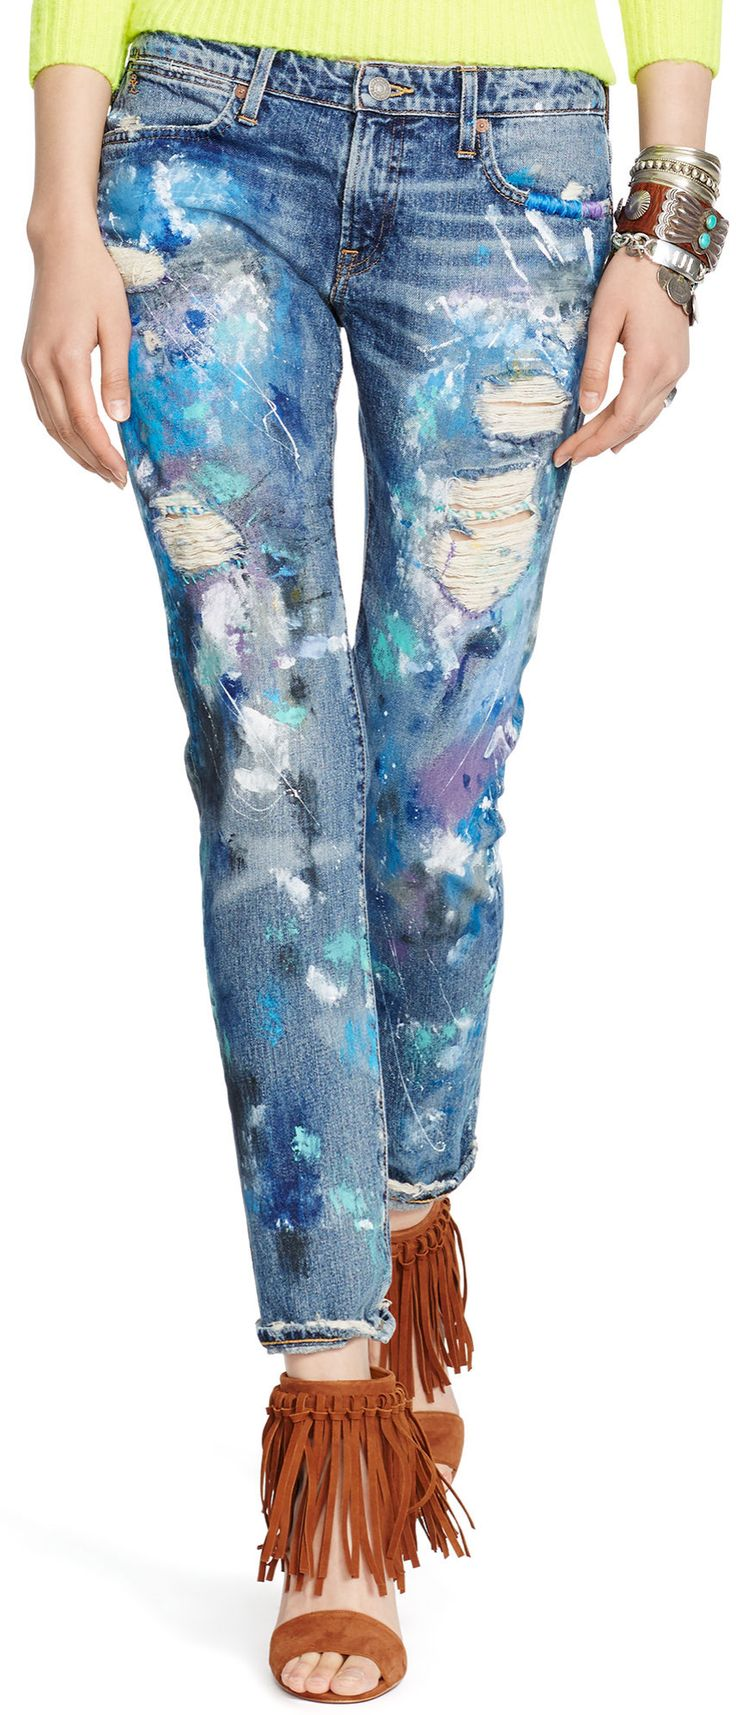 Paint-splattered denim from Polo Ralph Lauren: With a slim boyfriend silhouette that tapers slightly at the cuffs, this Astor jean is made from lightweight denim that's paint-splattered, ripped and repaired for a lived-in look. It brings an artful vibe to any ensemble.